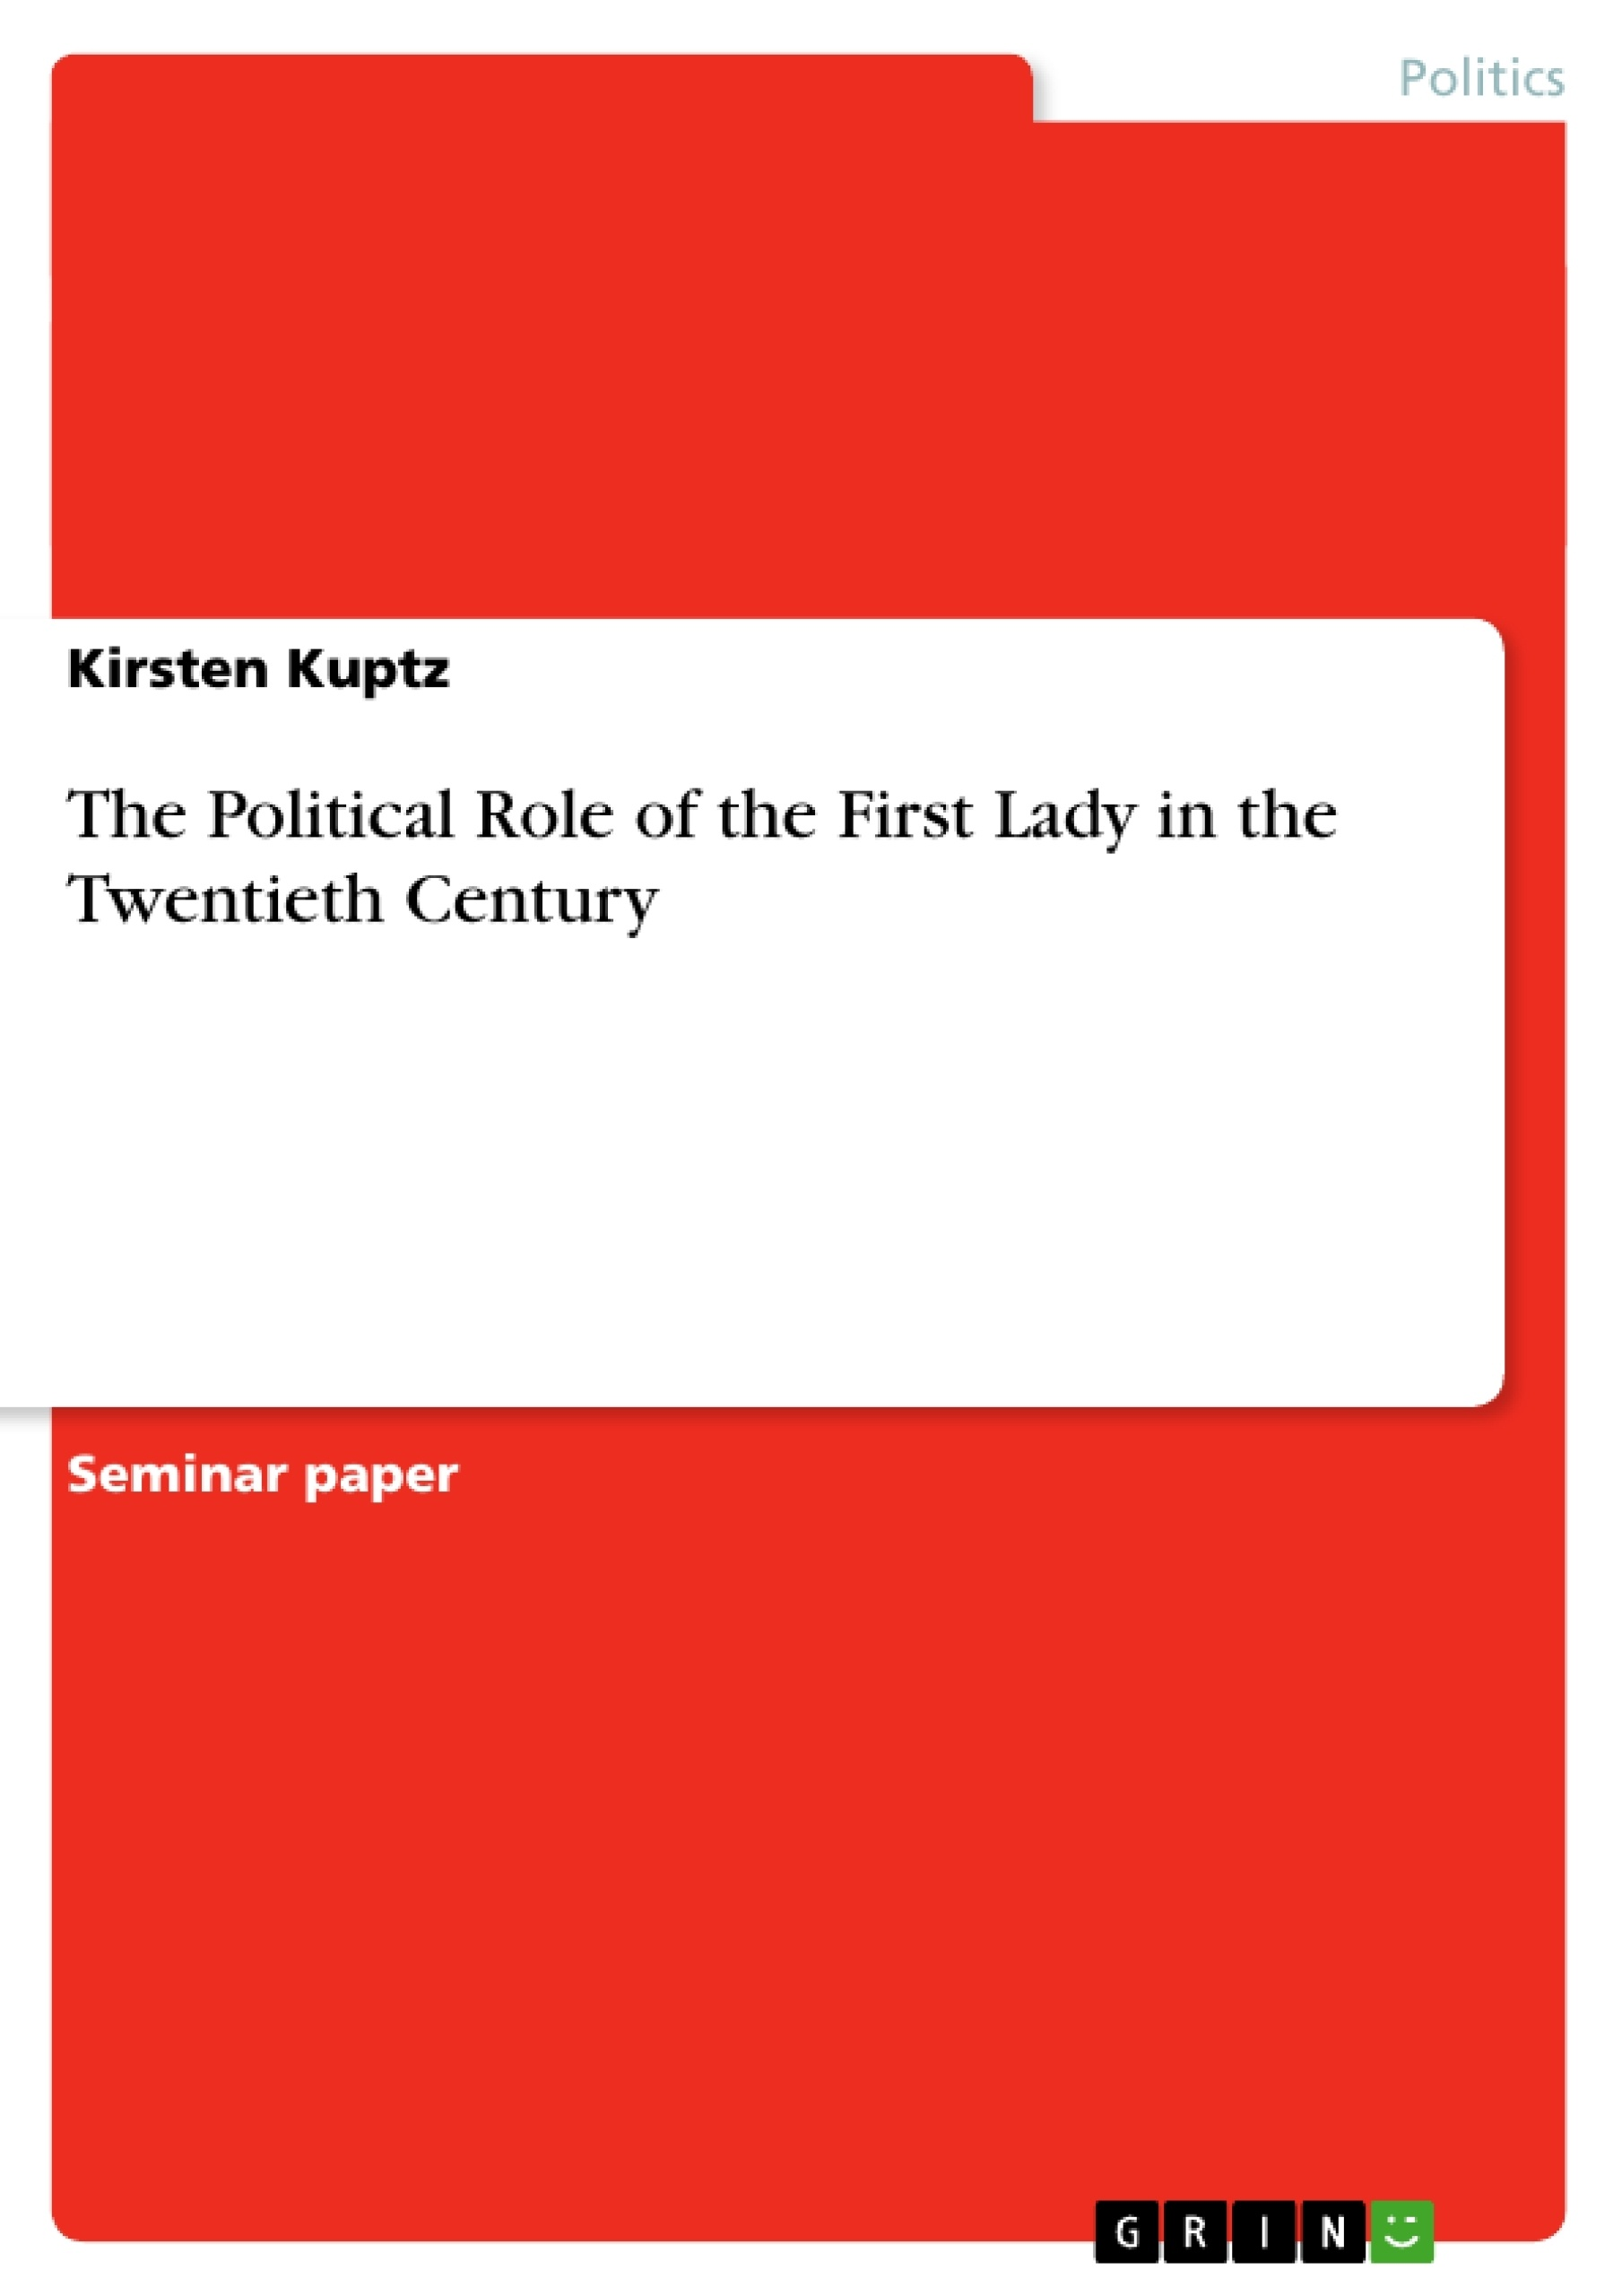 Title: The Political Role of the First Lady in the Twentieth Century